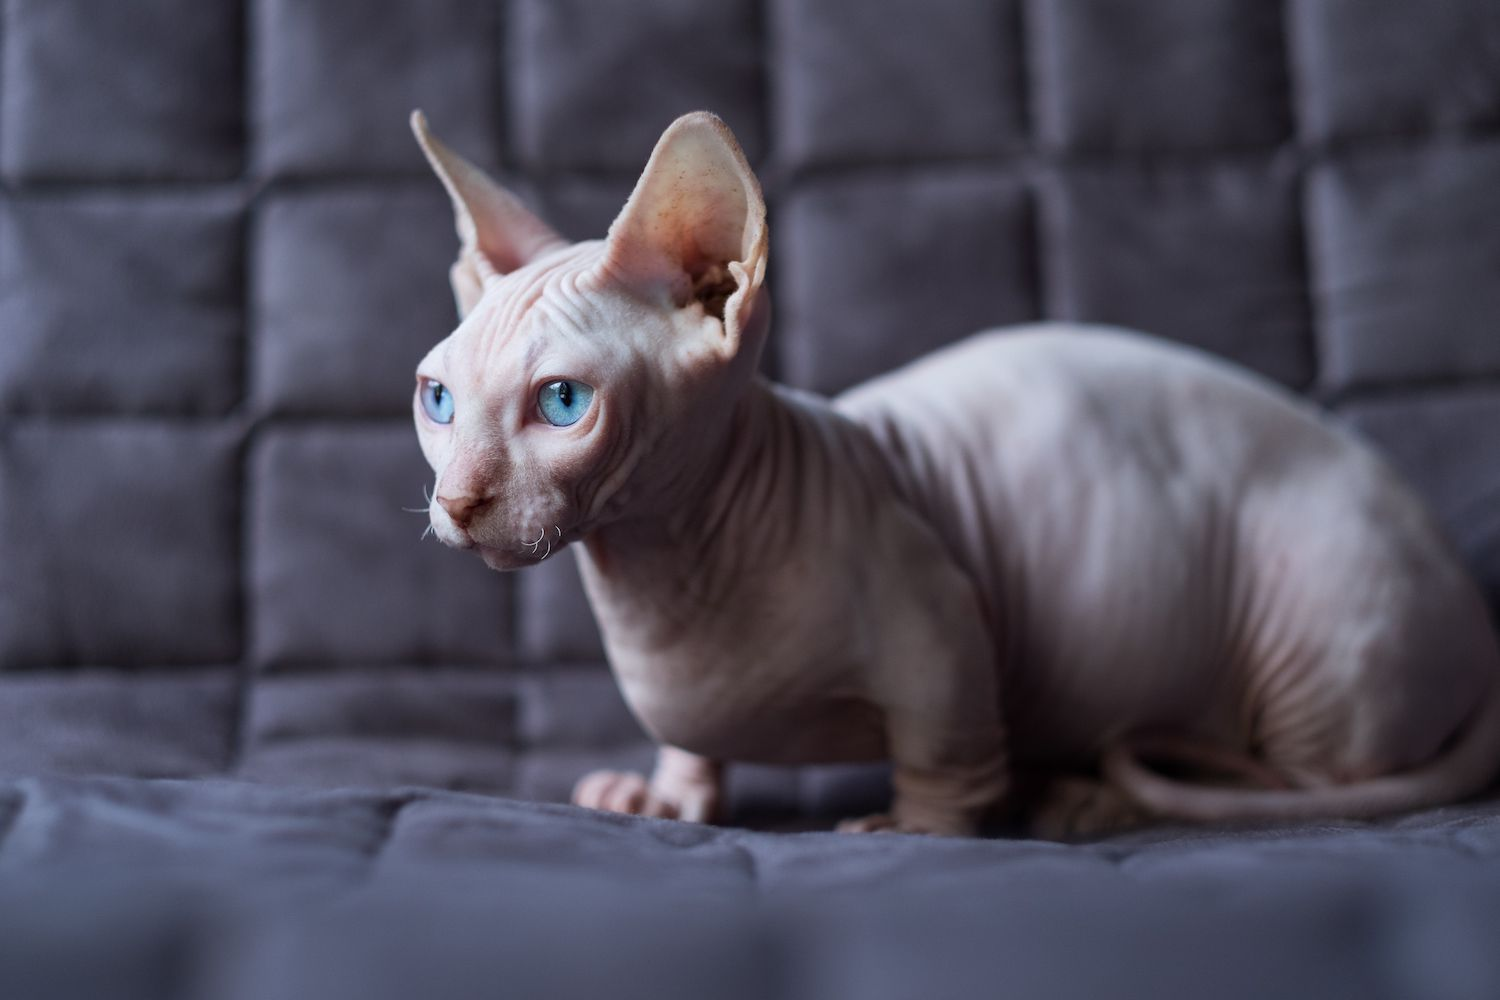 hairless bambino cat sitting on couch